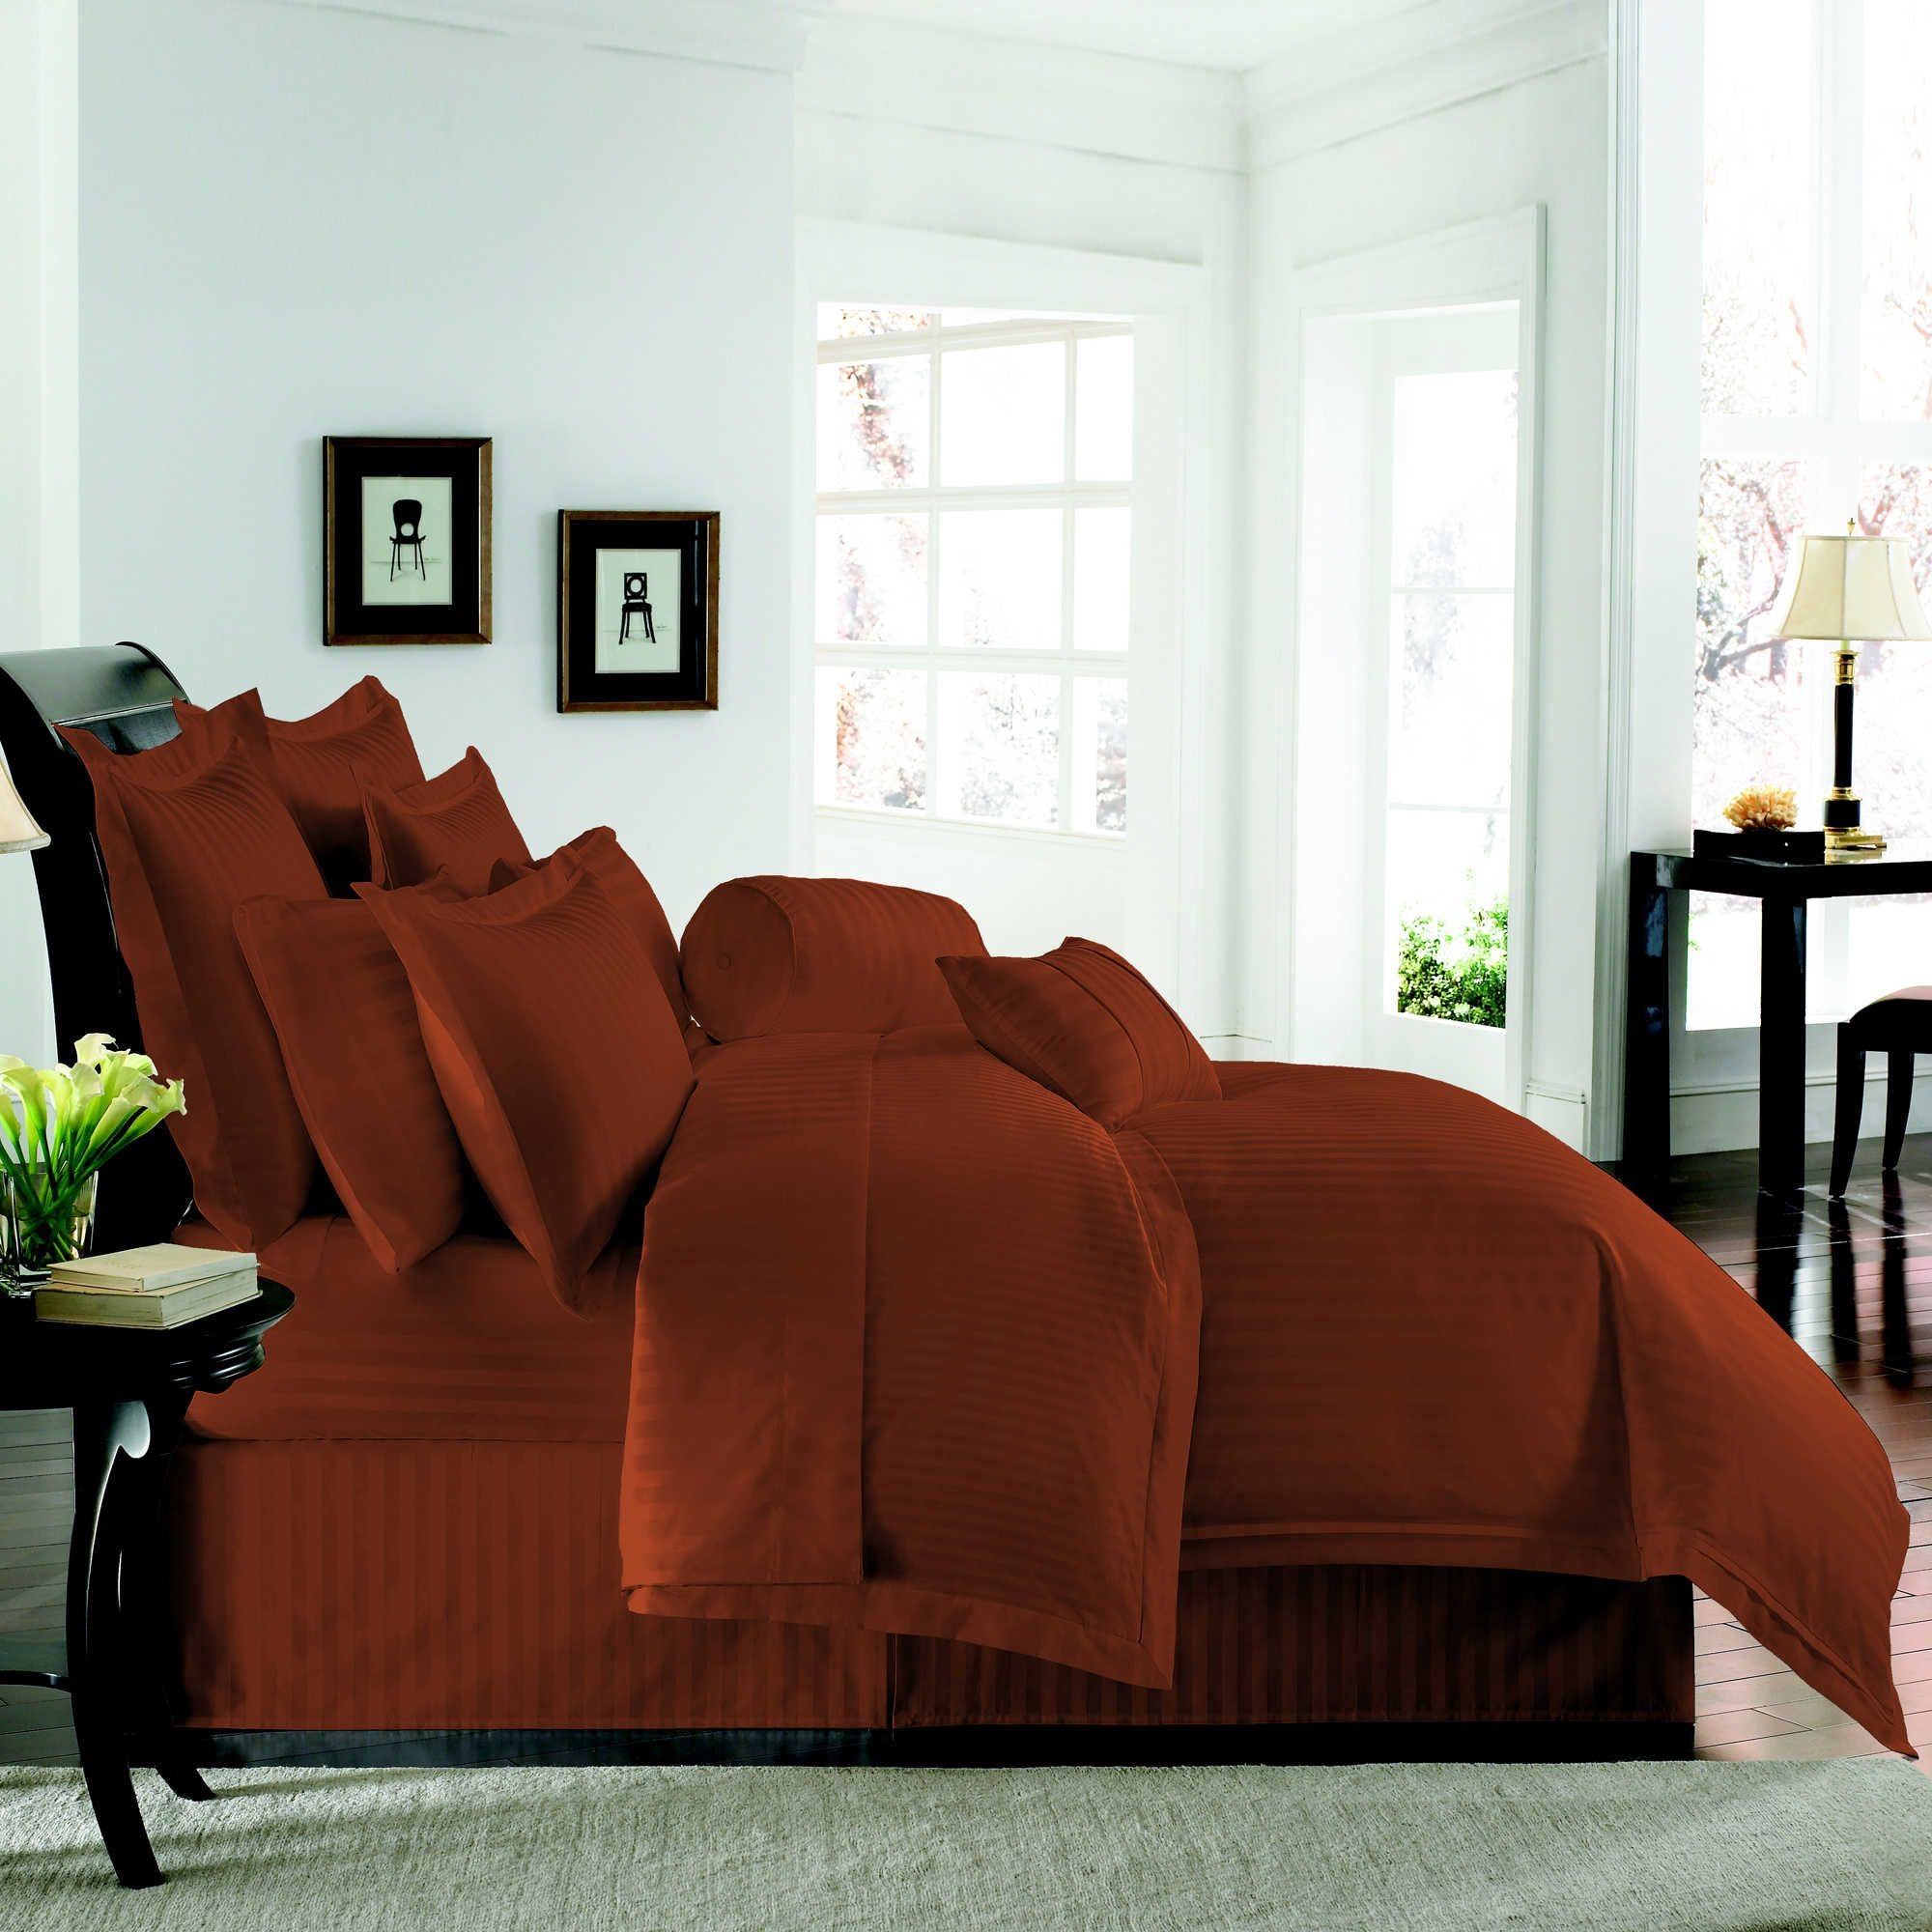 furniture orange buy ashley bringithomefurniture set comforter zaya queen a com